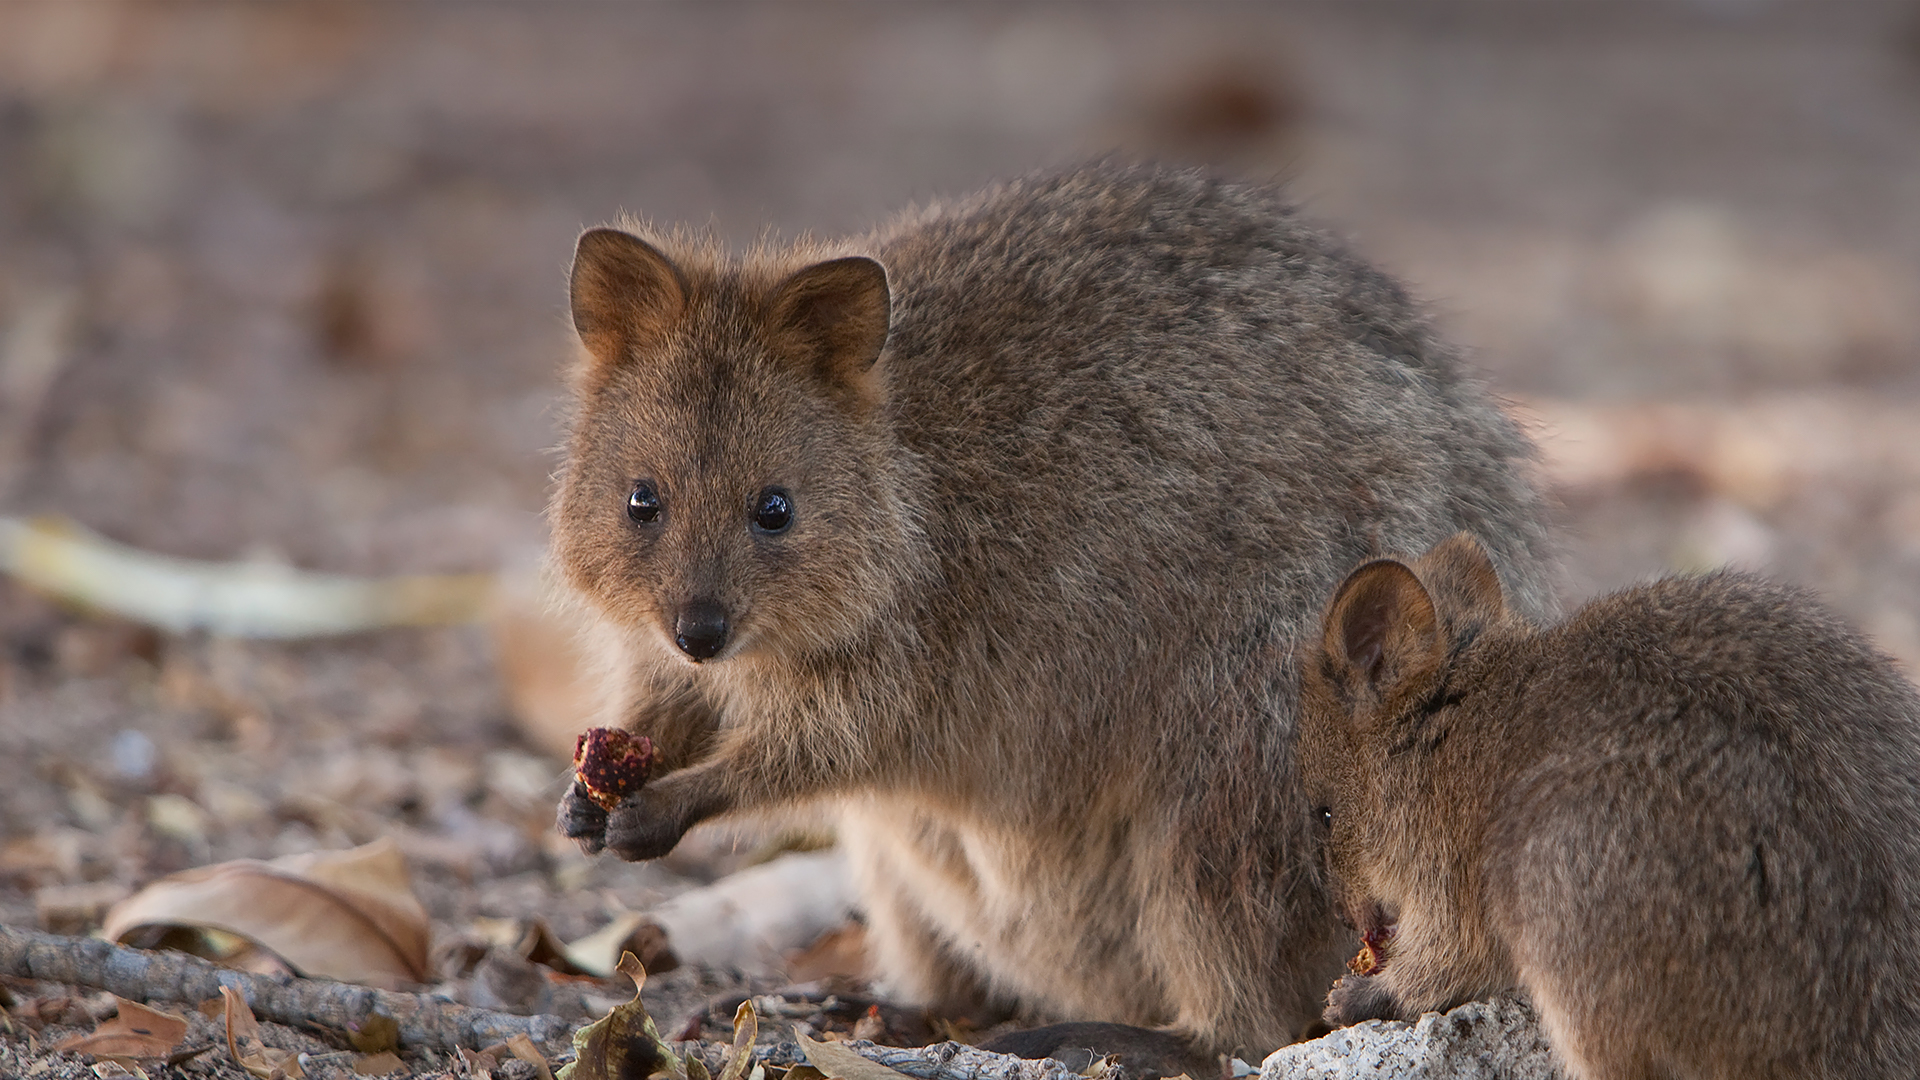 Quokka mom and baby eating fruit.